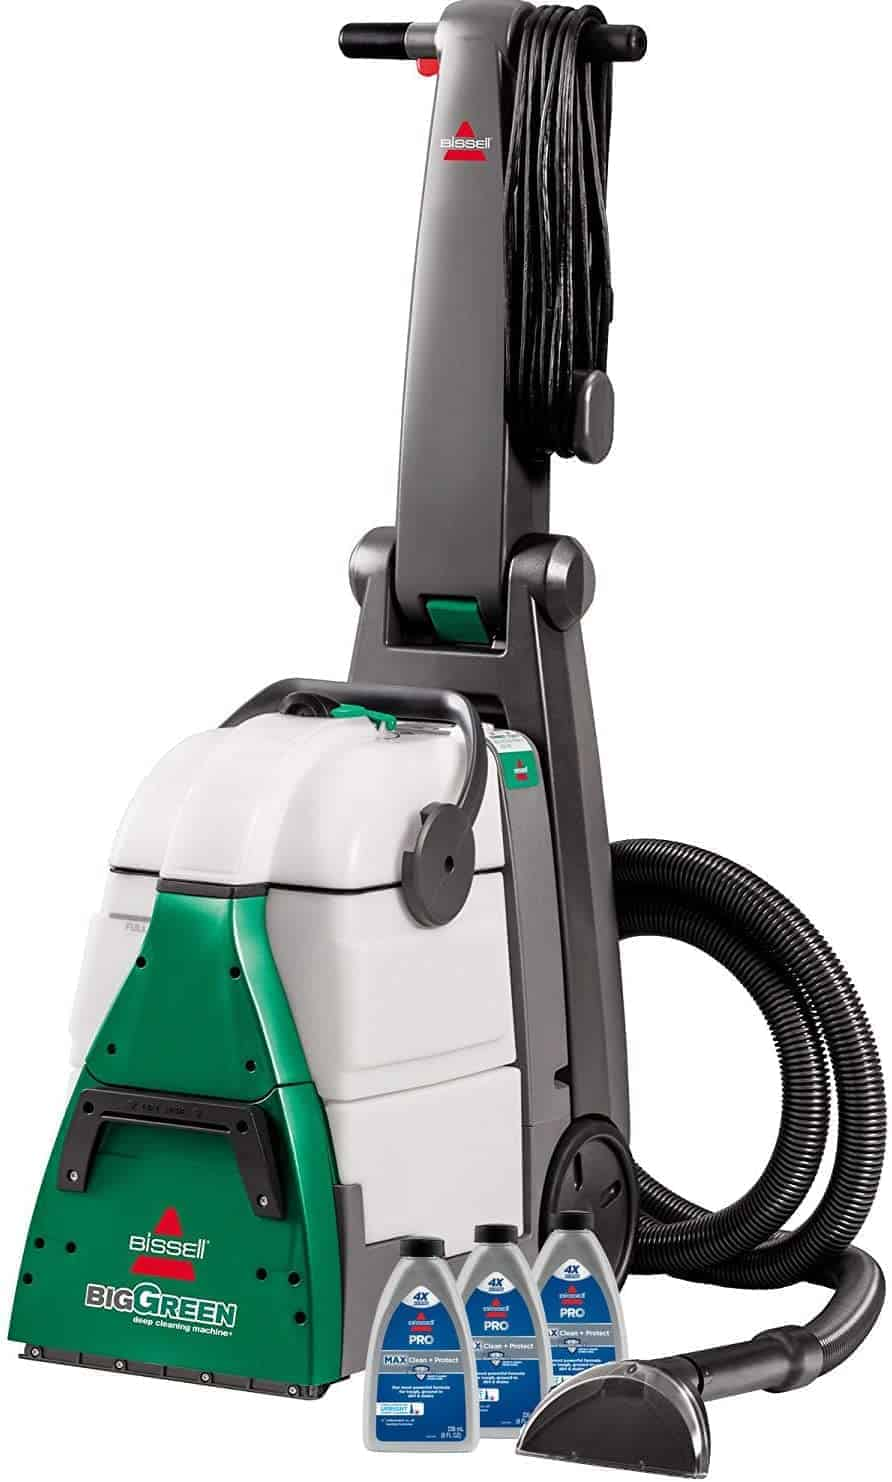 Best carpet vacuum for large surfaces: Bissell Big Green Professional Grade 86T3